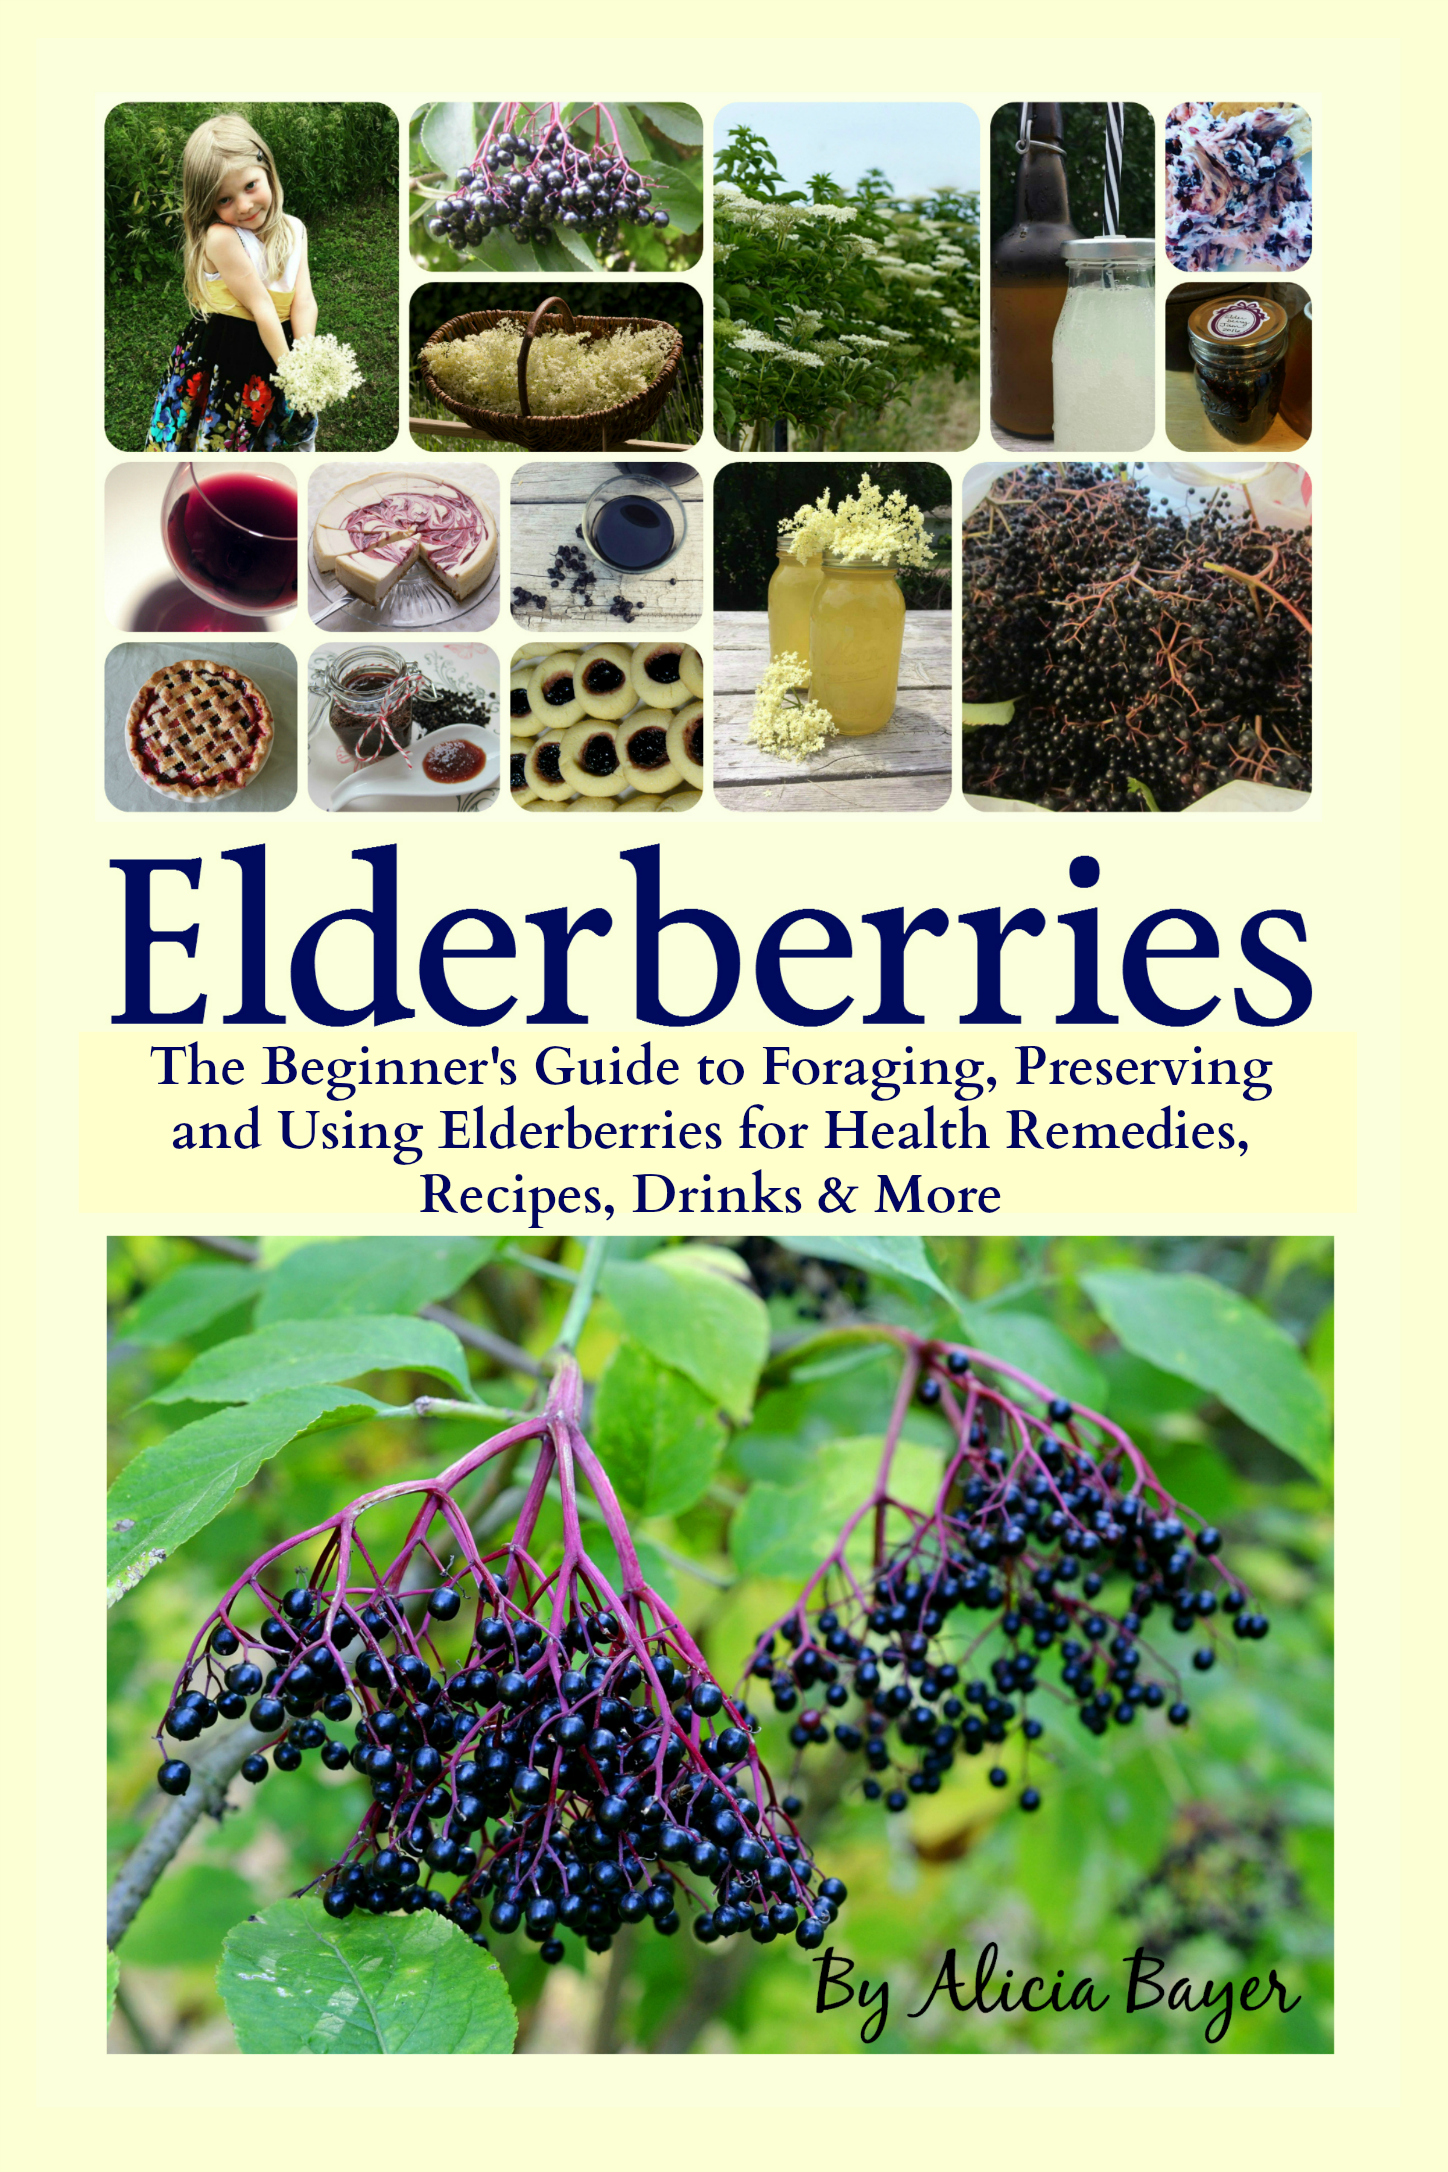 Elderberries grow wild all over the United States, Canada, Europe and beyond, yet most people don't even realize they're there. Now you can learn how to easily find wild elderberries, forage them and grow your own to make medicinal remedies like anti-flu syrup and elderberry oxymel, delicious baked goods like elderberry meringue pie and elderberry thumbprint cookies, elderflower recipes like elderflower fritters and elderflower soda, alcoholic recipes like elderberry wine and elderberry hard lemonade, and lots more. Elderberries and elderflowers are among the most perfect wild foods. They are useful in all sorts of recipes, packed with health benefits that do everything from boost the immune system to cure the flu, and you can even find them for free all over the world -- or grow your own. This comprehensive guide will teach you: The incredible history of elderberries and elder flowers Health studies and traditional medicinal uses The effects of heating and freezing on the medicinal properties of elderberries The most efficient way to get every bit of the anti-flu benefits from elderberries (Hint: it's not elderberry syrup!) How to easily find elderberries, with full-color ID photos and maps of elderberry ranges in the United States and Canada (though you'll also find them elsewhere all throughout the world) How to grow your own elder shrubs from cuttings or wild transplants How to preserve elderberries by freezing, drying, canning and more How to ID elders and how to tell them from so-called poisonous look-alikes Elderflower recipes for teas, pancakes, syrups and more Elderberry recipes for jams, tinctures, oxymels, popsicles, pies, muffins and more Instructions for homemade spirits like elderflower wine, elderberry mead, elderflower-blueberry smashes and elderflower liqueur ice cream floats -- just to name a few! And much more With over 60 recipes for health remedies, baked goods, spirits, jellies and more! The amazing health benefits of elderberries are well known. There's no more need to spend up to $20 a pound on dried elderberries when you can find them all around you once you know where (and when) to look. There's also no more need to limit yourself to elderberry syrup when there are so many better ways to get the health benefits of elderberries. And once you know how to find or grow your own elderberries, there's no need to stop at medicinal recipes when you'll have enough to also make all kinds of delicious jellies, liqueurs, baked goods, drinks and other delicious treats. Whether you're a novice forager wanting to find local (free!) sources of elderberries for anti-flu syrup, a homeowner interested in growing elderberries and finding delicious ways to preserve them, or a veteran forager looking for fun new ways to make use of elderberry and elderflower bounties, this comprehensive book has something for you.